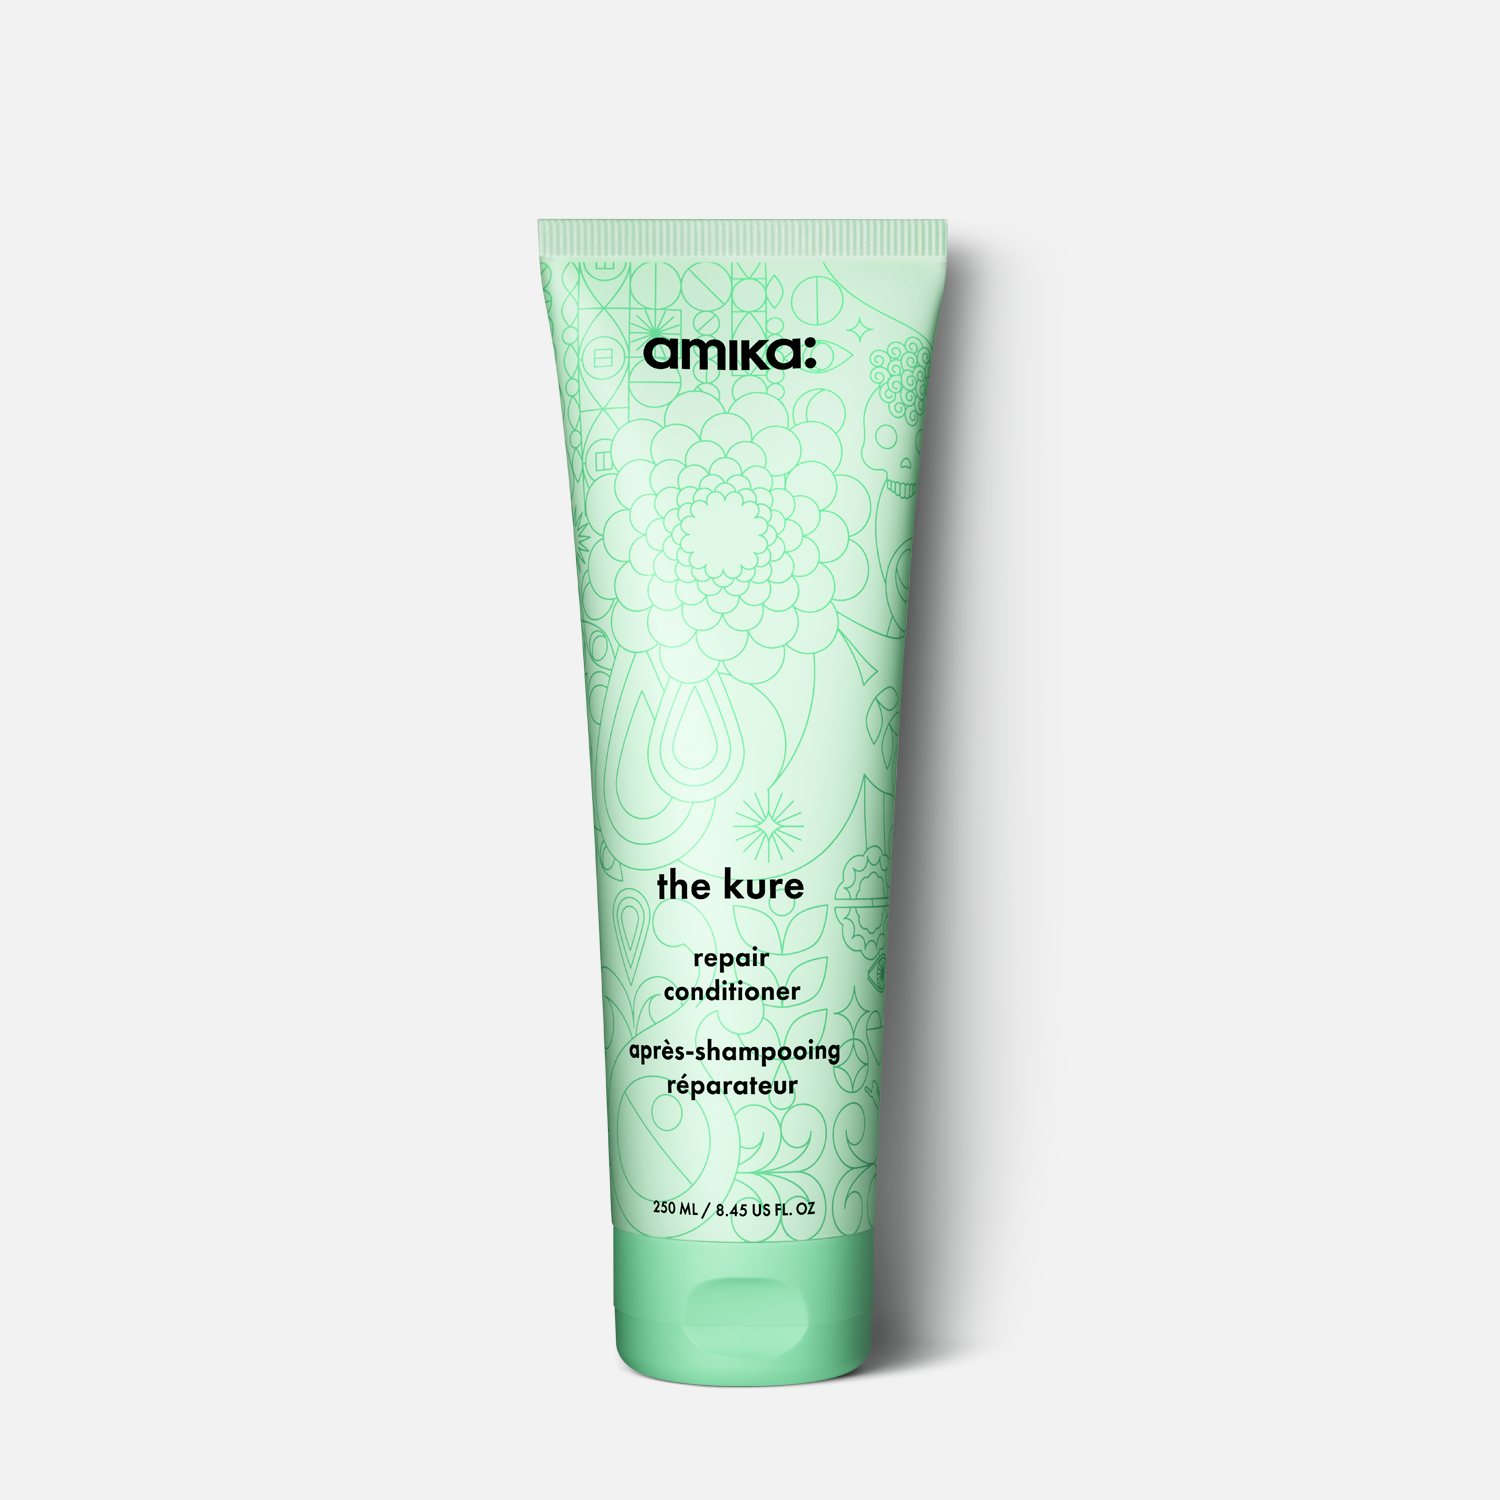 Amika's The Kure Conditioner: $22, a nice heavy conditioner where a little goes a long way, this is a very moisturizing conditioner & is meant to be rinsed thoroughly from the hair.